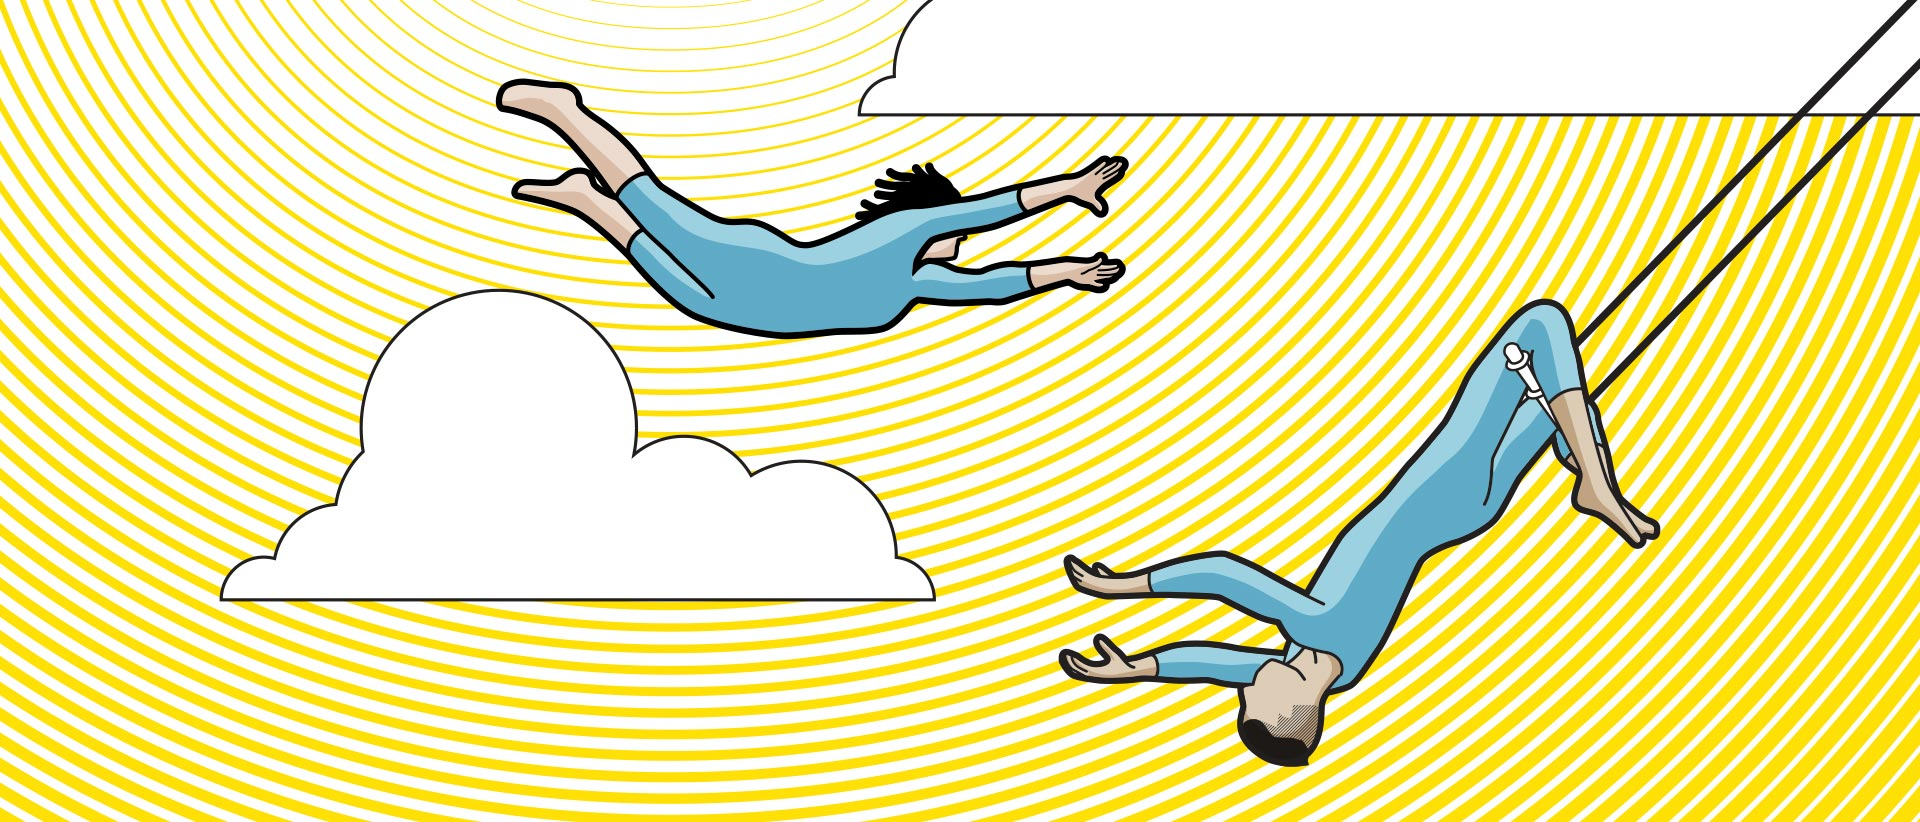 Illustration of a trapeze artist midair about to be caught by the partner on the other trapeze